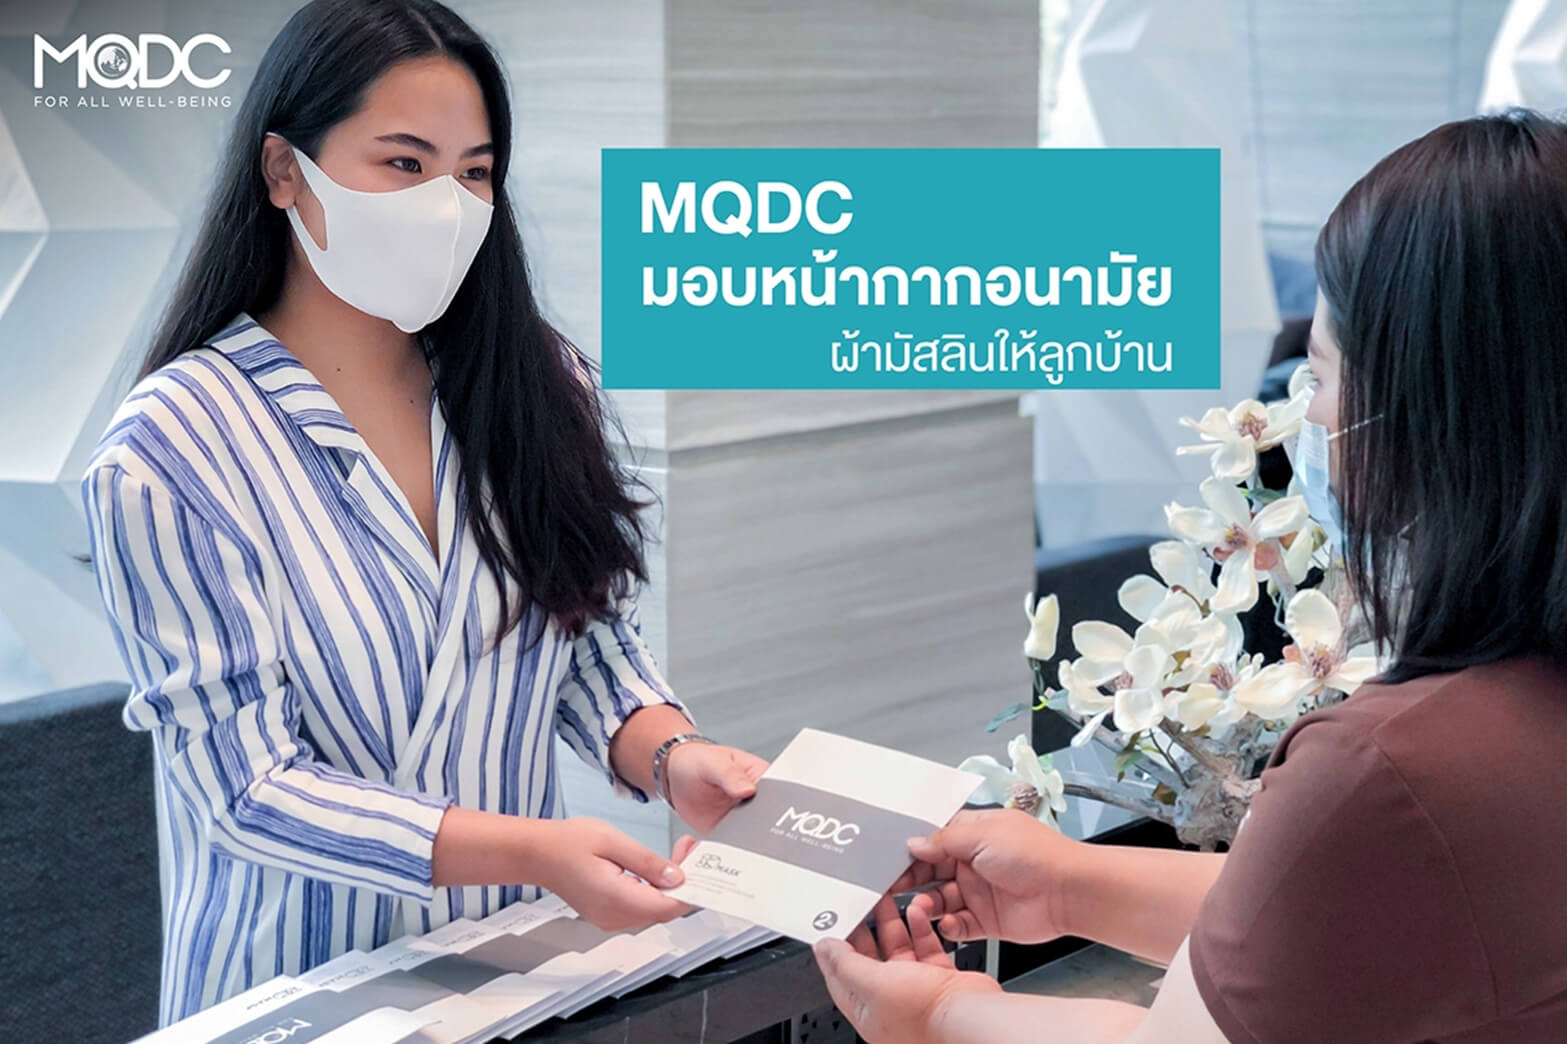 MQDC gives out 3D muslin masks to residents